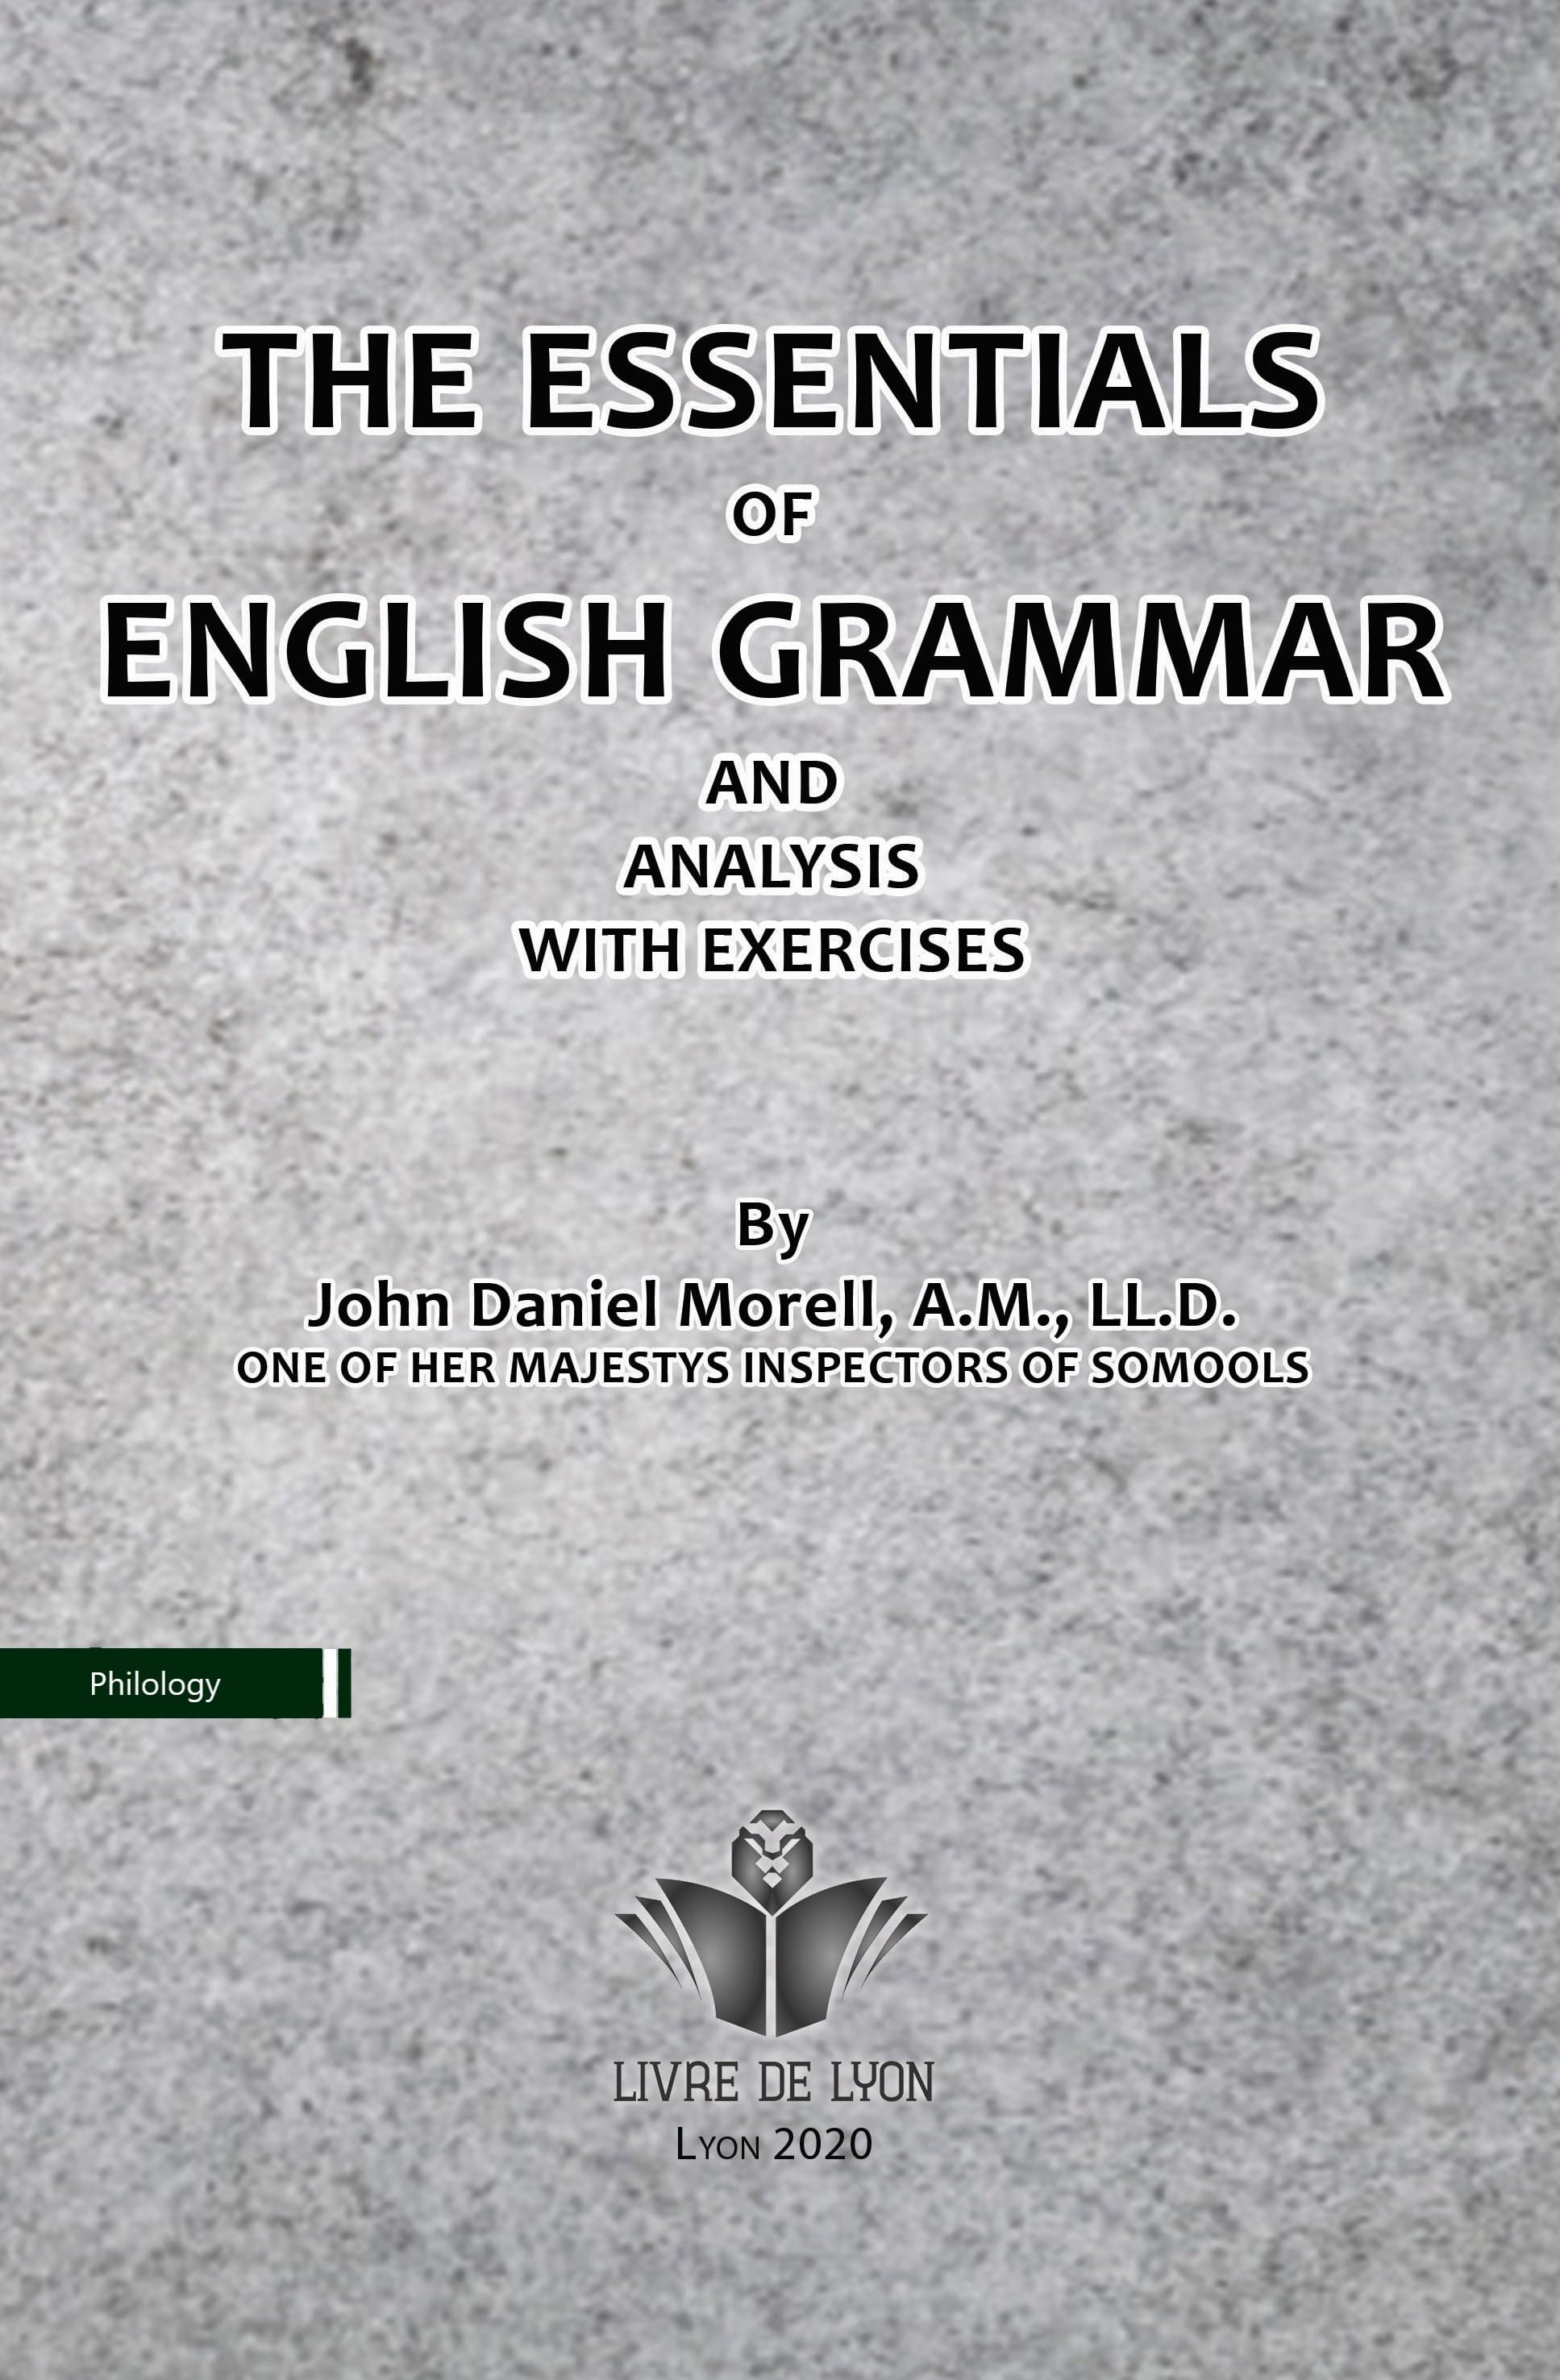 The Essentials of English Grammar